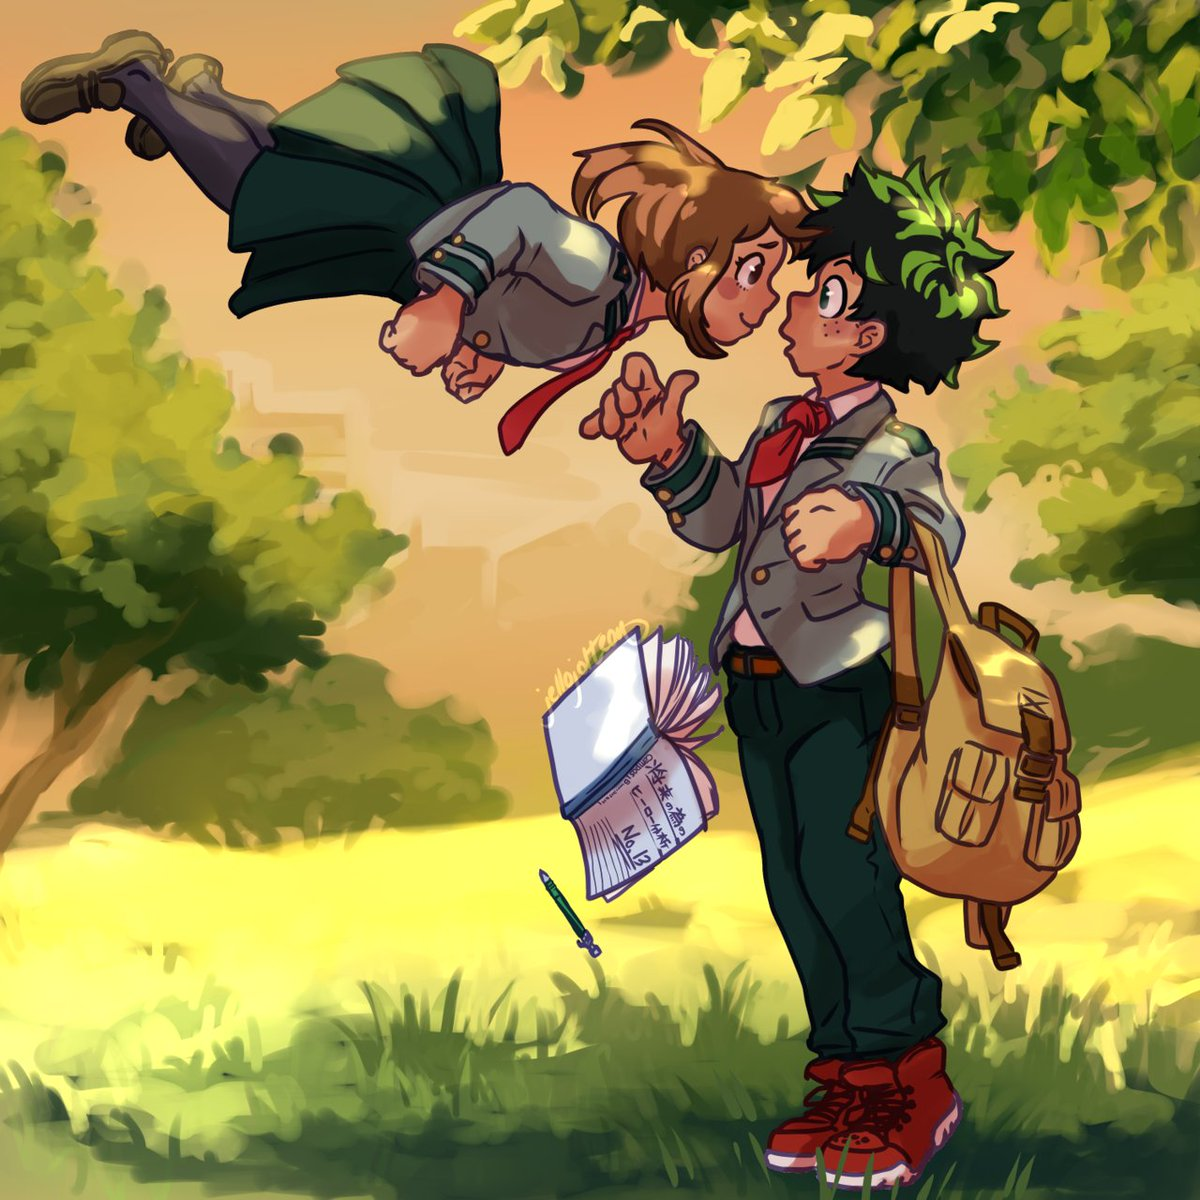 Do you promise to look after her?  #MyHeroAcademia #Izuocha <br>http://pic.twitter.com/nSZF8FTxQA